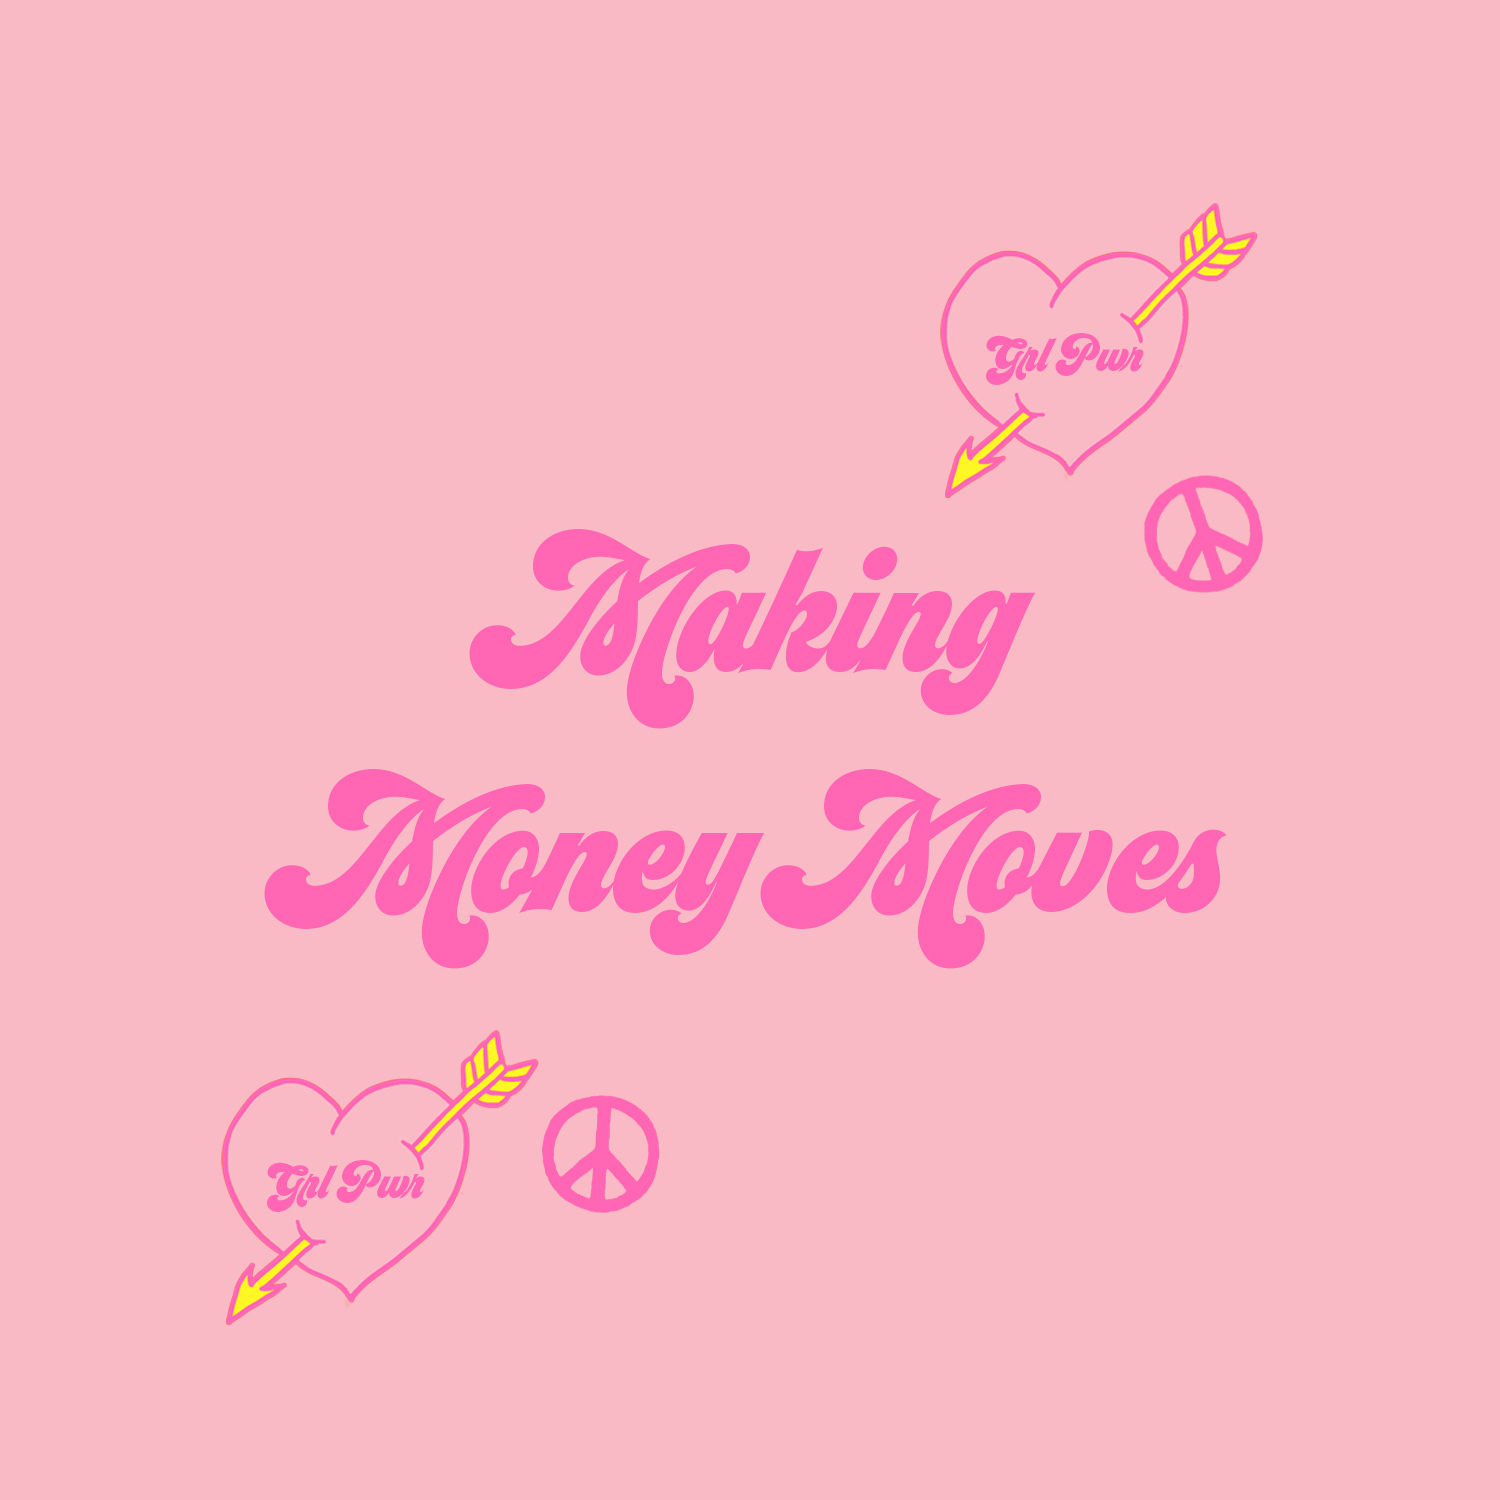 MAKING MONEY MOVES - Creating work that is revenue generating for our gang members, that has an important message, that is meaningful and that makes a difference